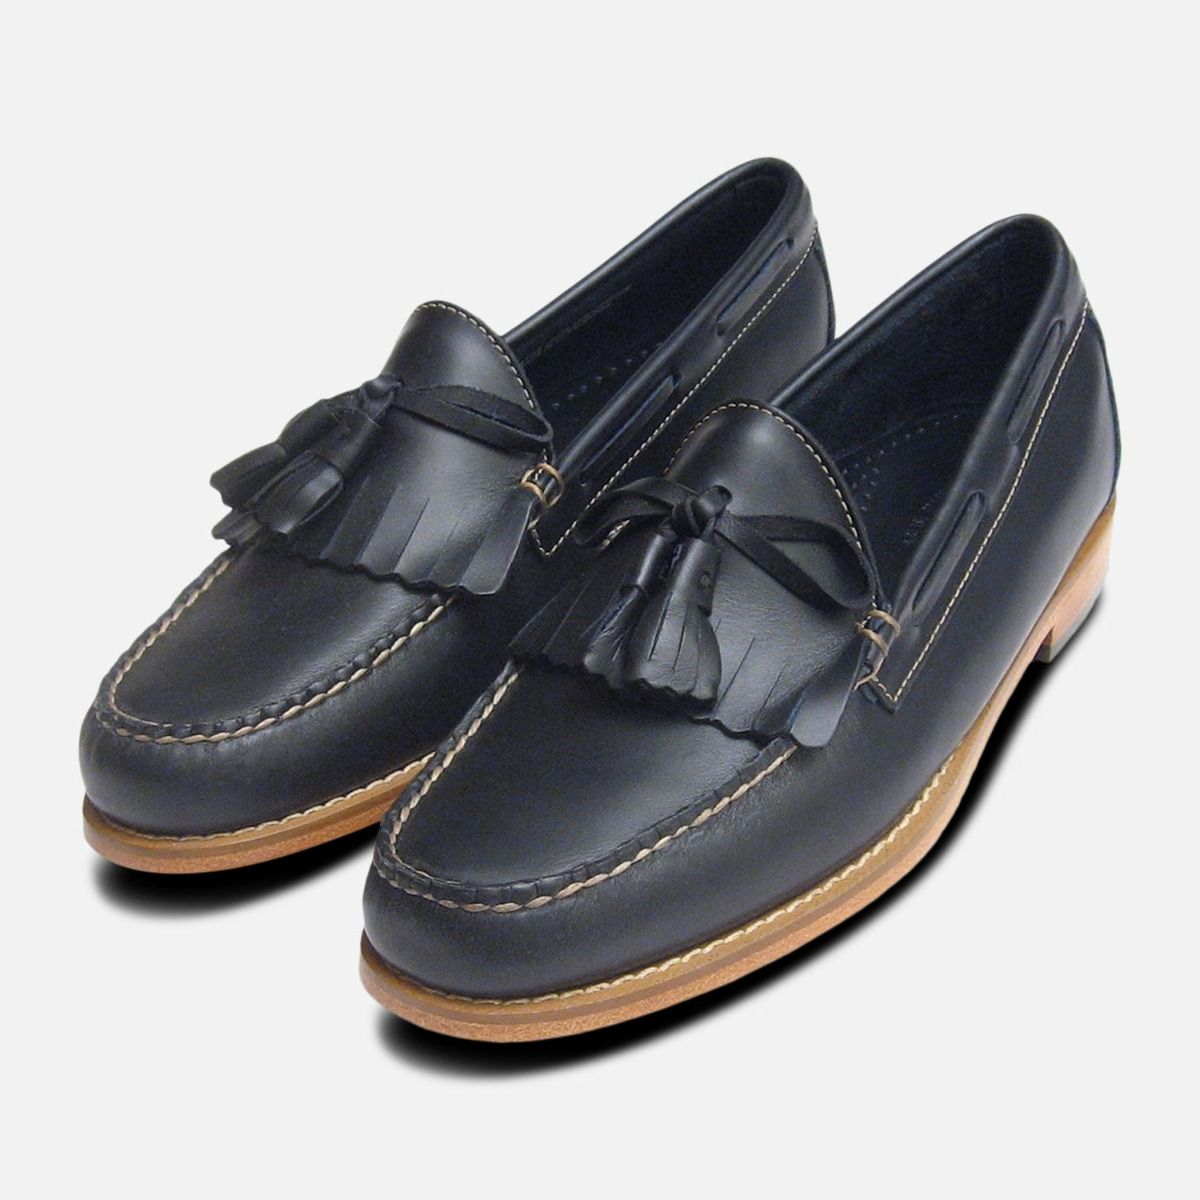 e3bd3a489f886 Navy Blue Waxy Leather Mens Fringe & Tassel Loafers by Bass Weejuns